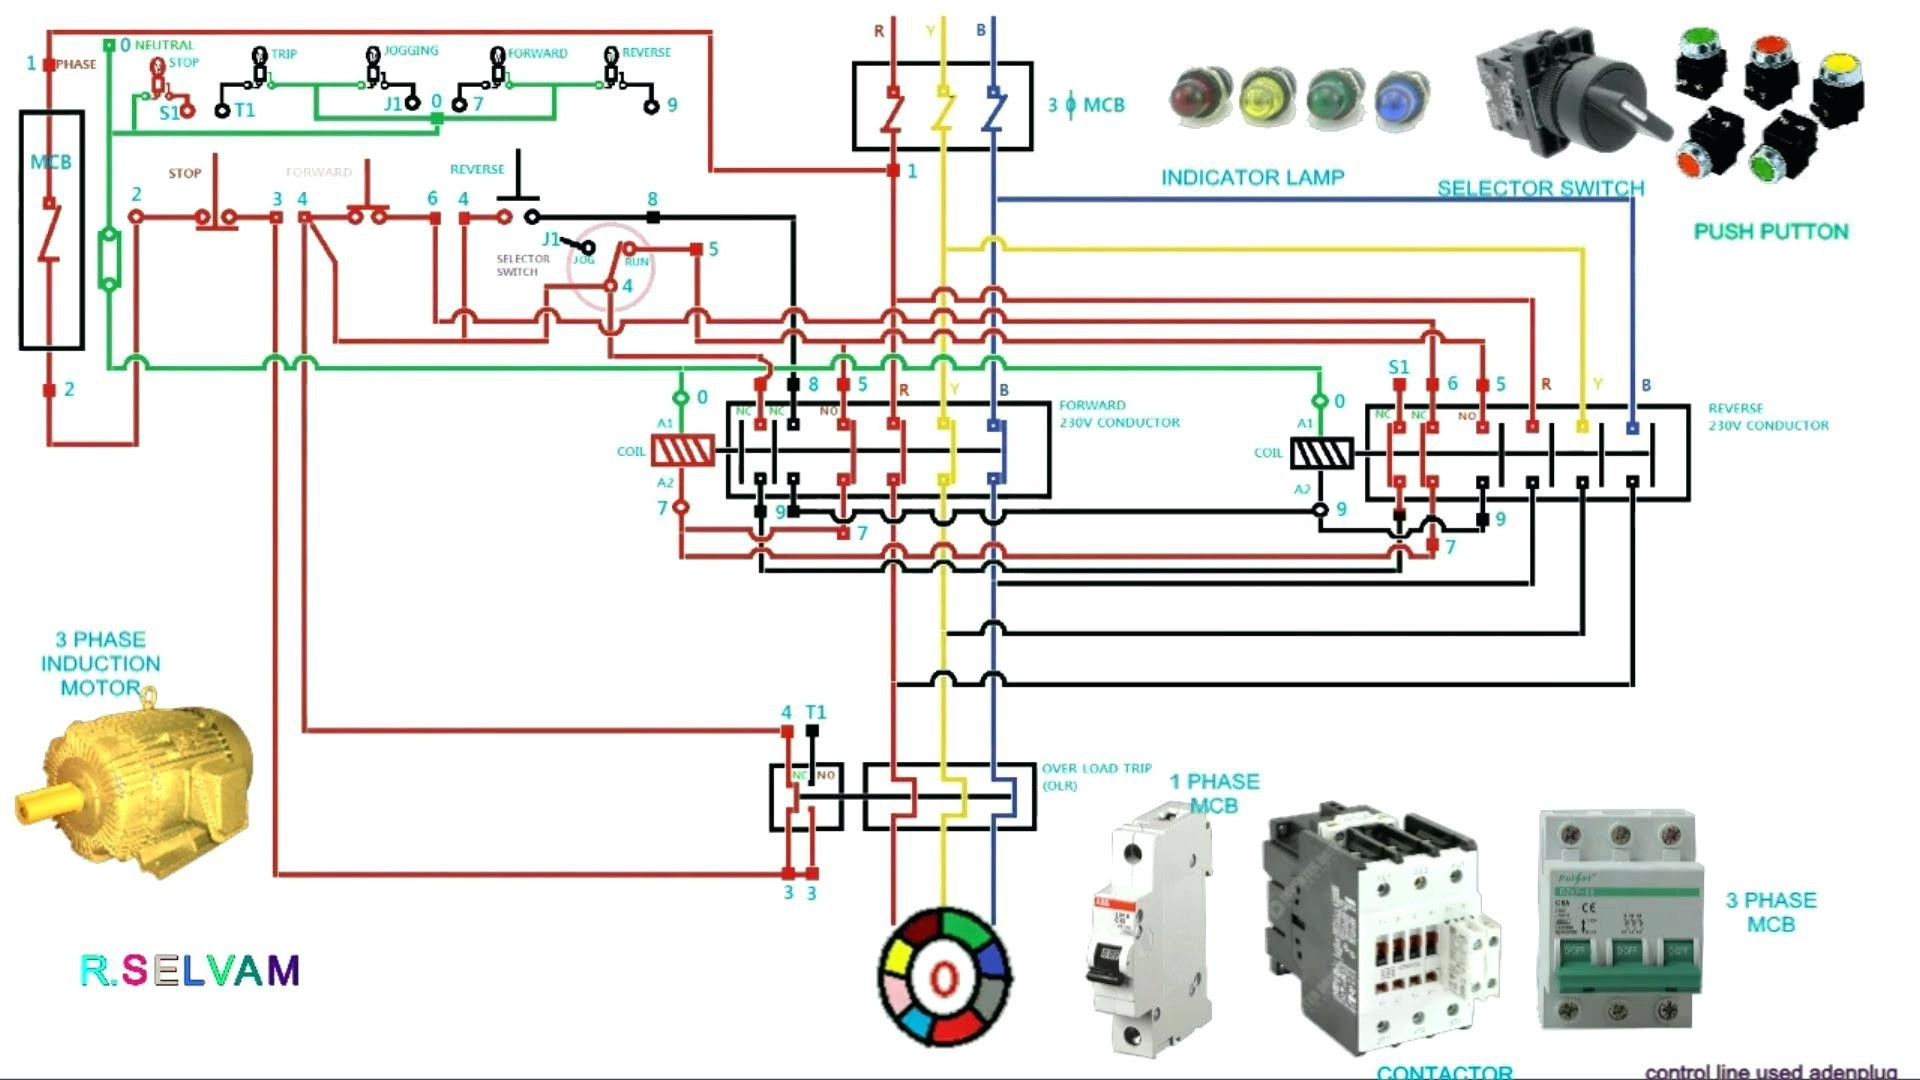 Wiring Diagram Direct line Starter Save Circuit Diagram Contactor Best 3 Phase Motor Starter Wiring